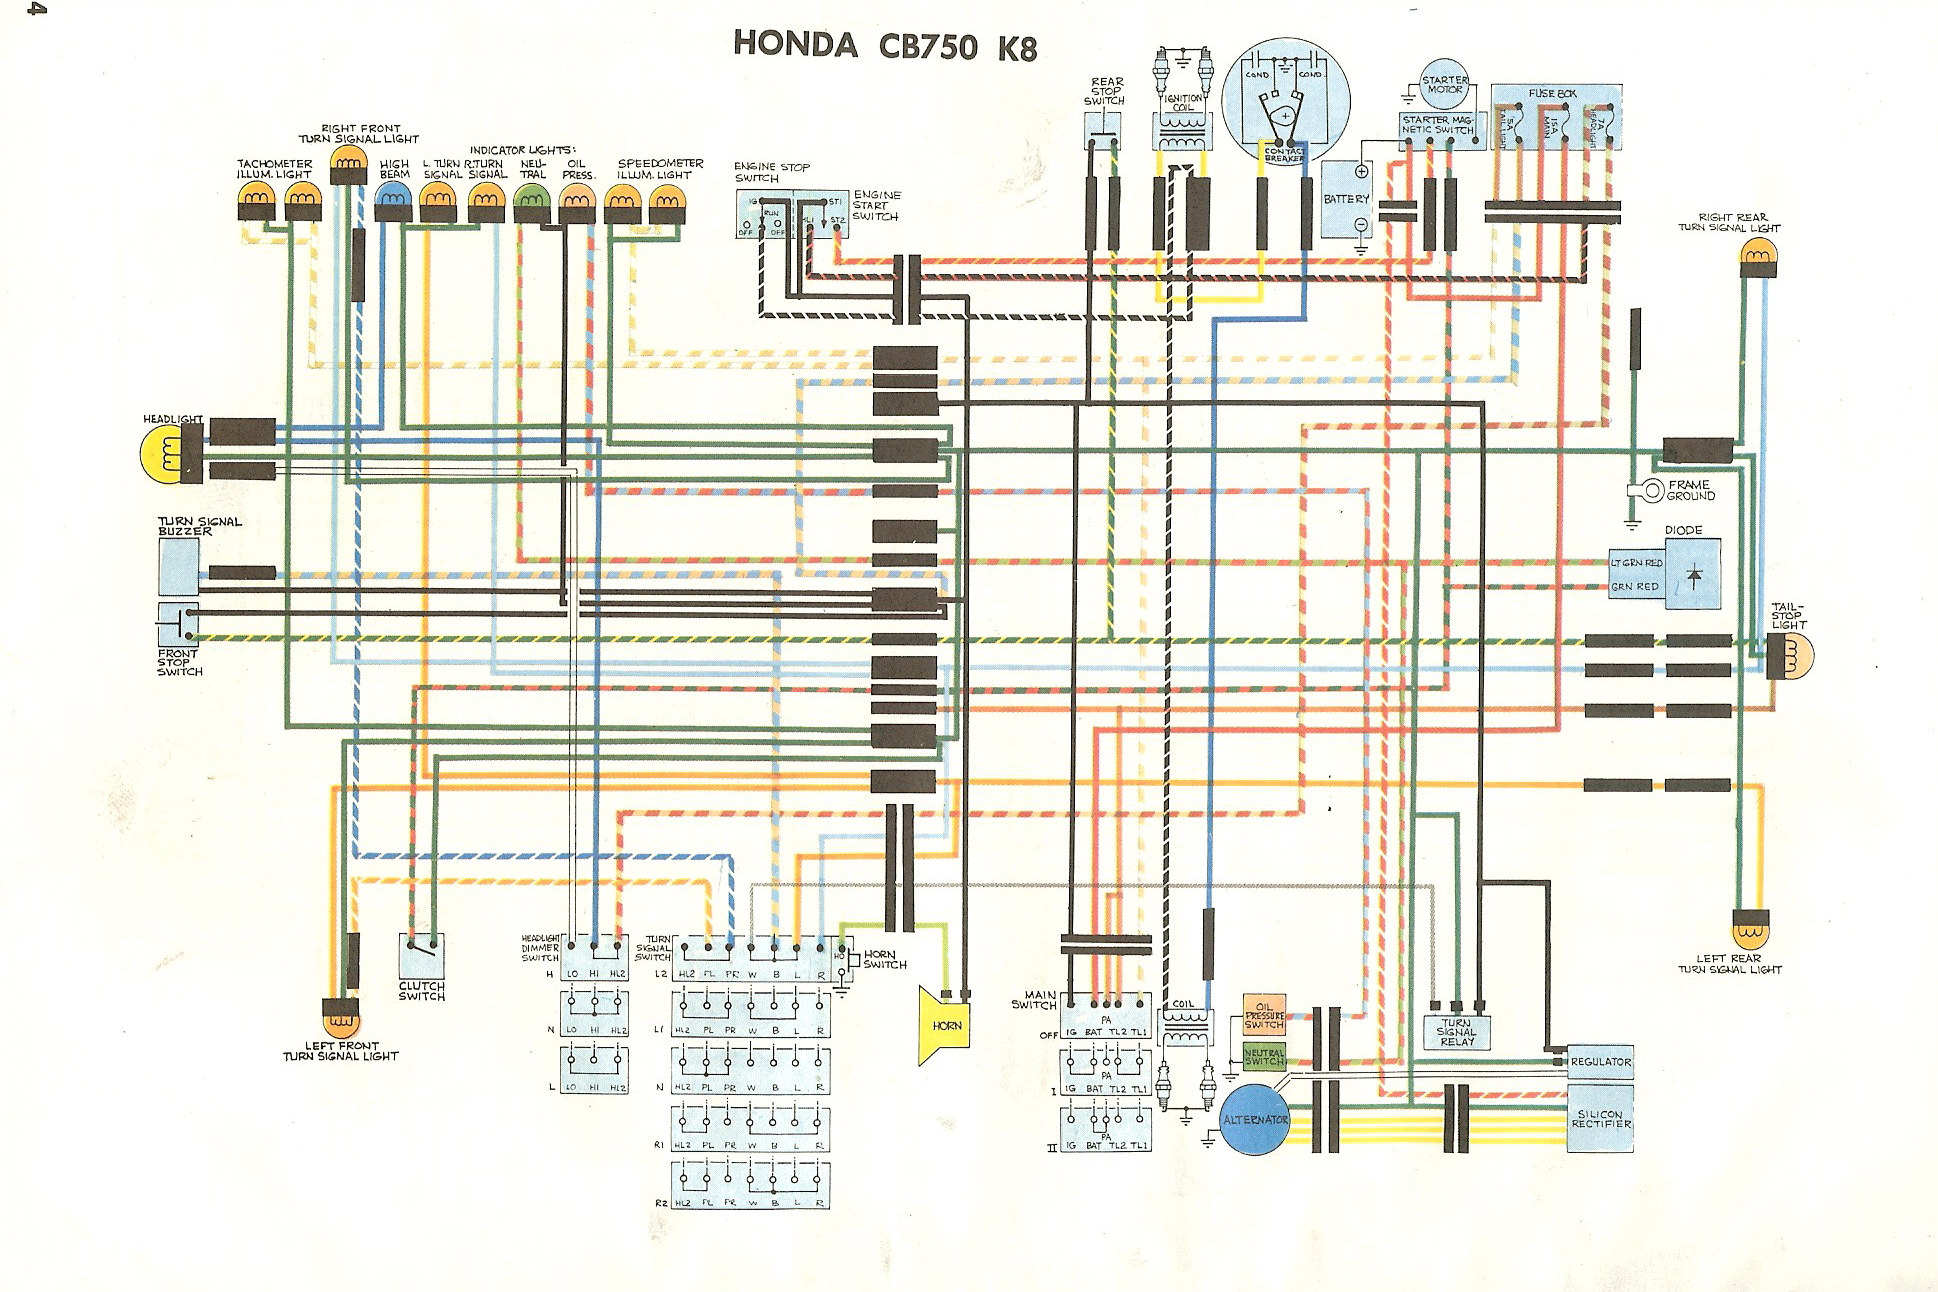 Honda Cb750 K2 Wiring Diagram Libraries Furthermore Volt Meter With Shunt 1969 750 K 1 Todayscb750k History